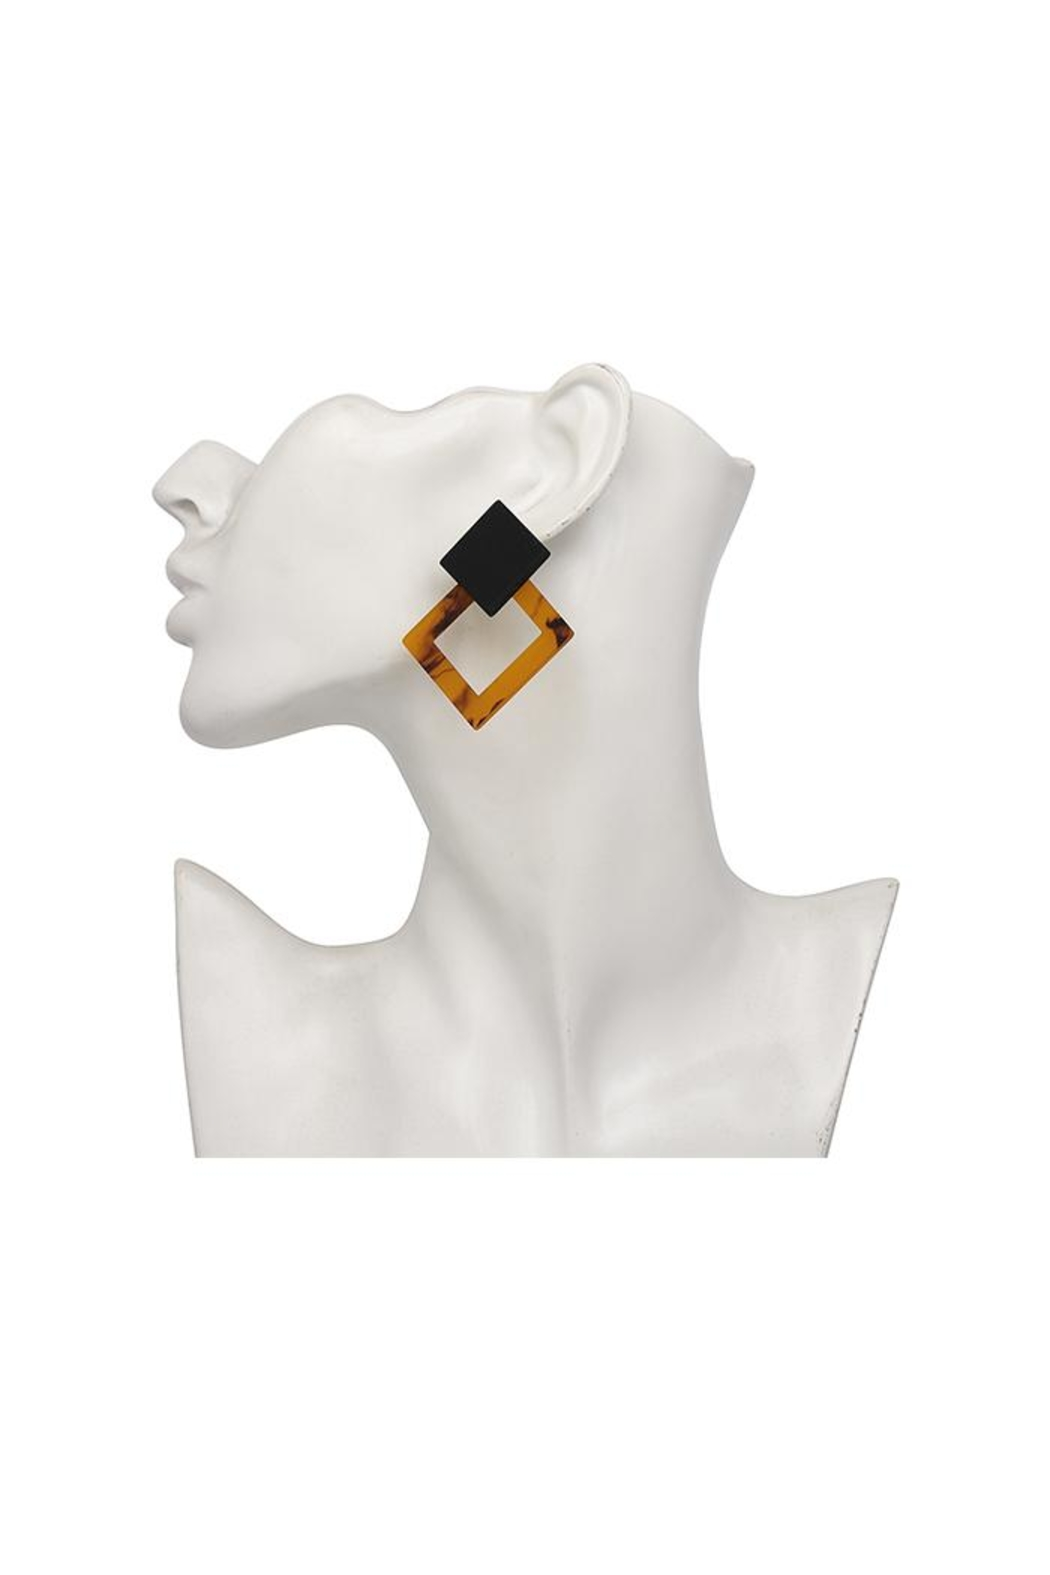 Madison Avenue Accessories Amber Honey Earring - Main Image